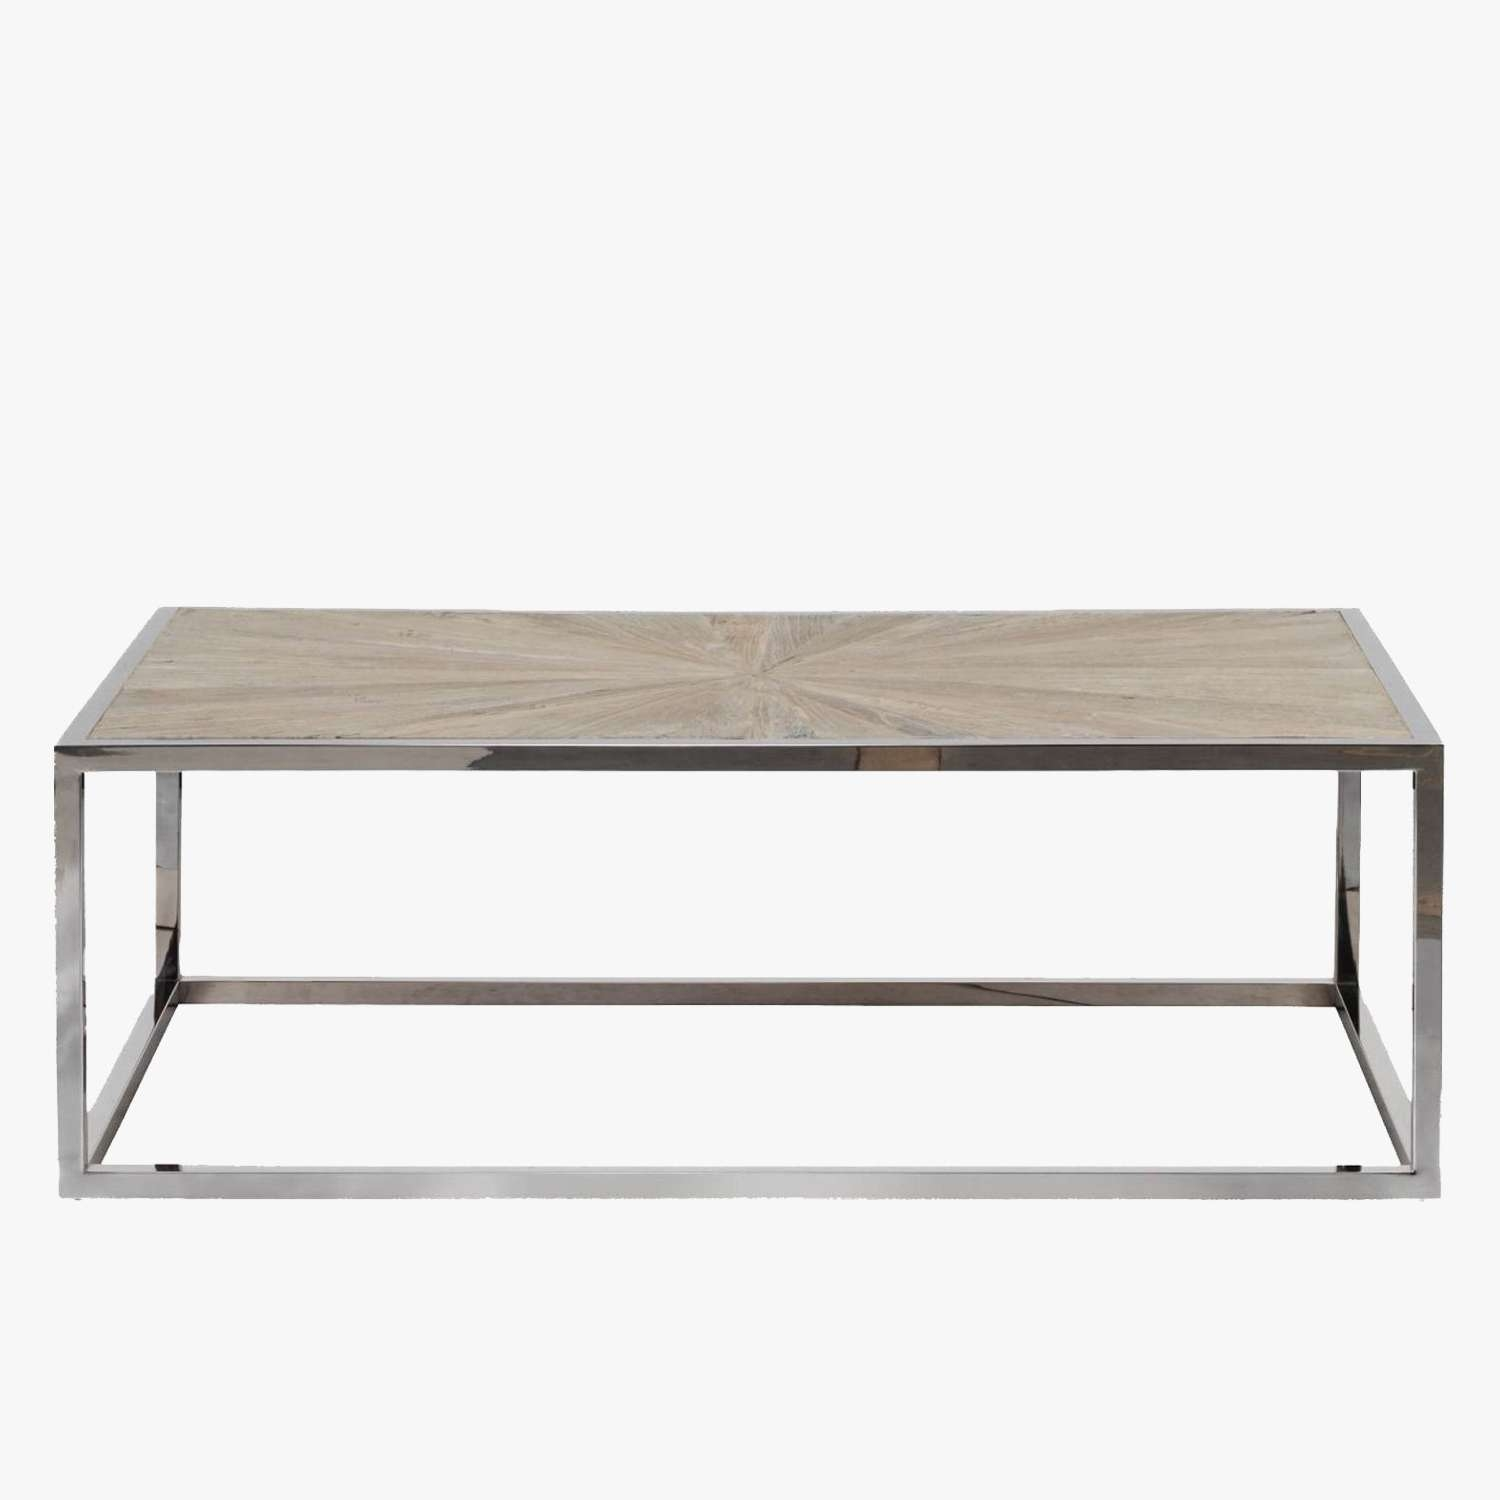 Parquet Top Chrome Coffee Table – Shop Coffee Tables – Dear Keaton Inside Popular Chrome Coffee Tables (Gallery 15 of 20)